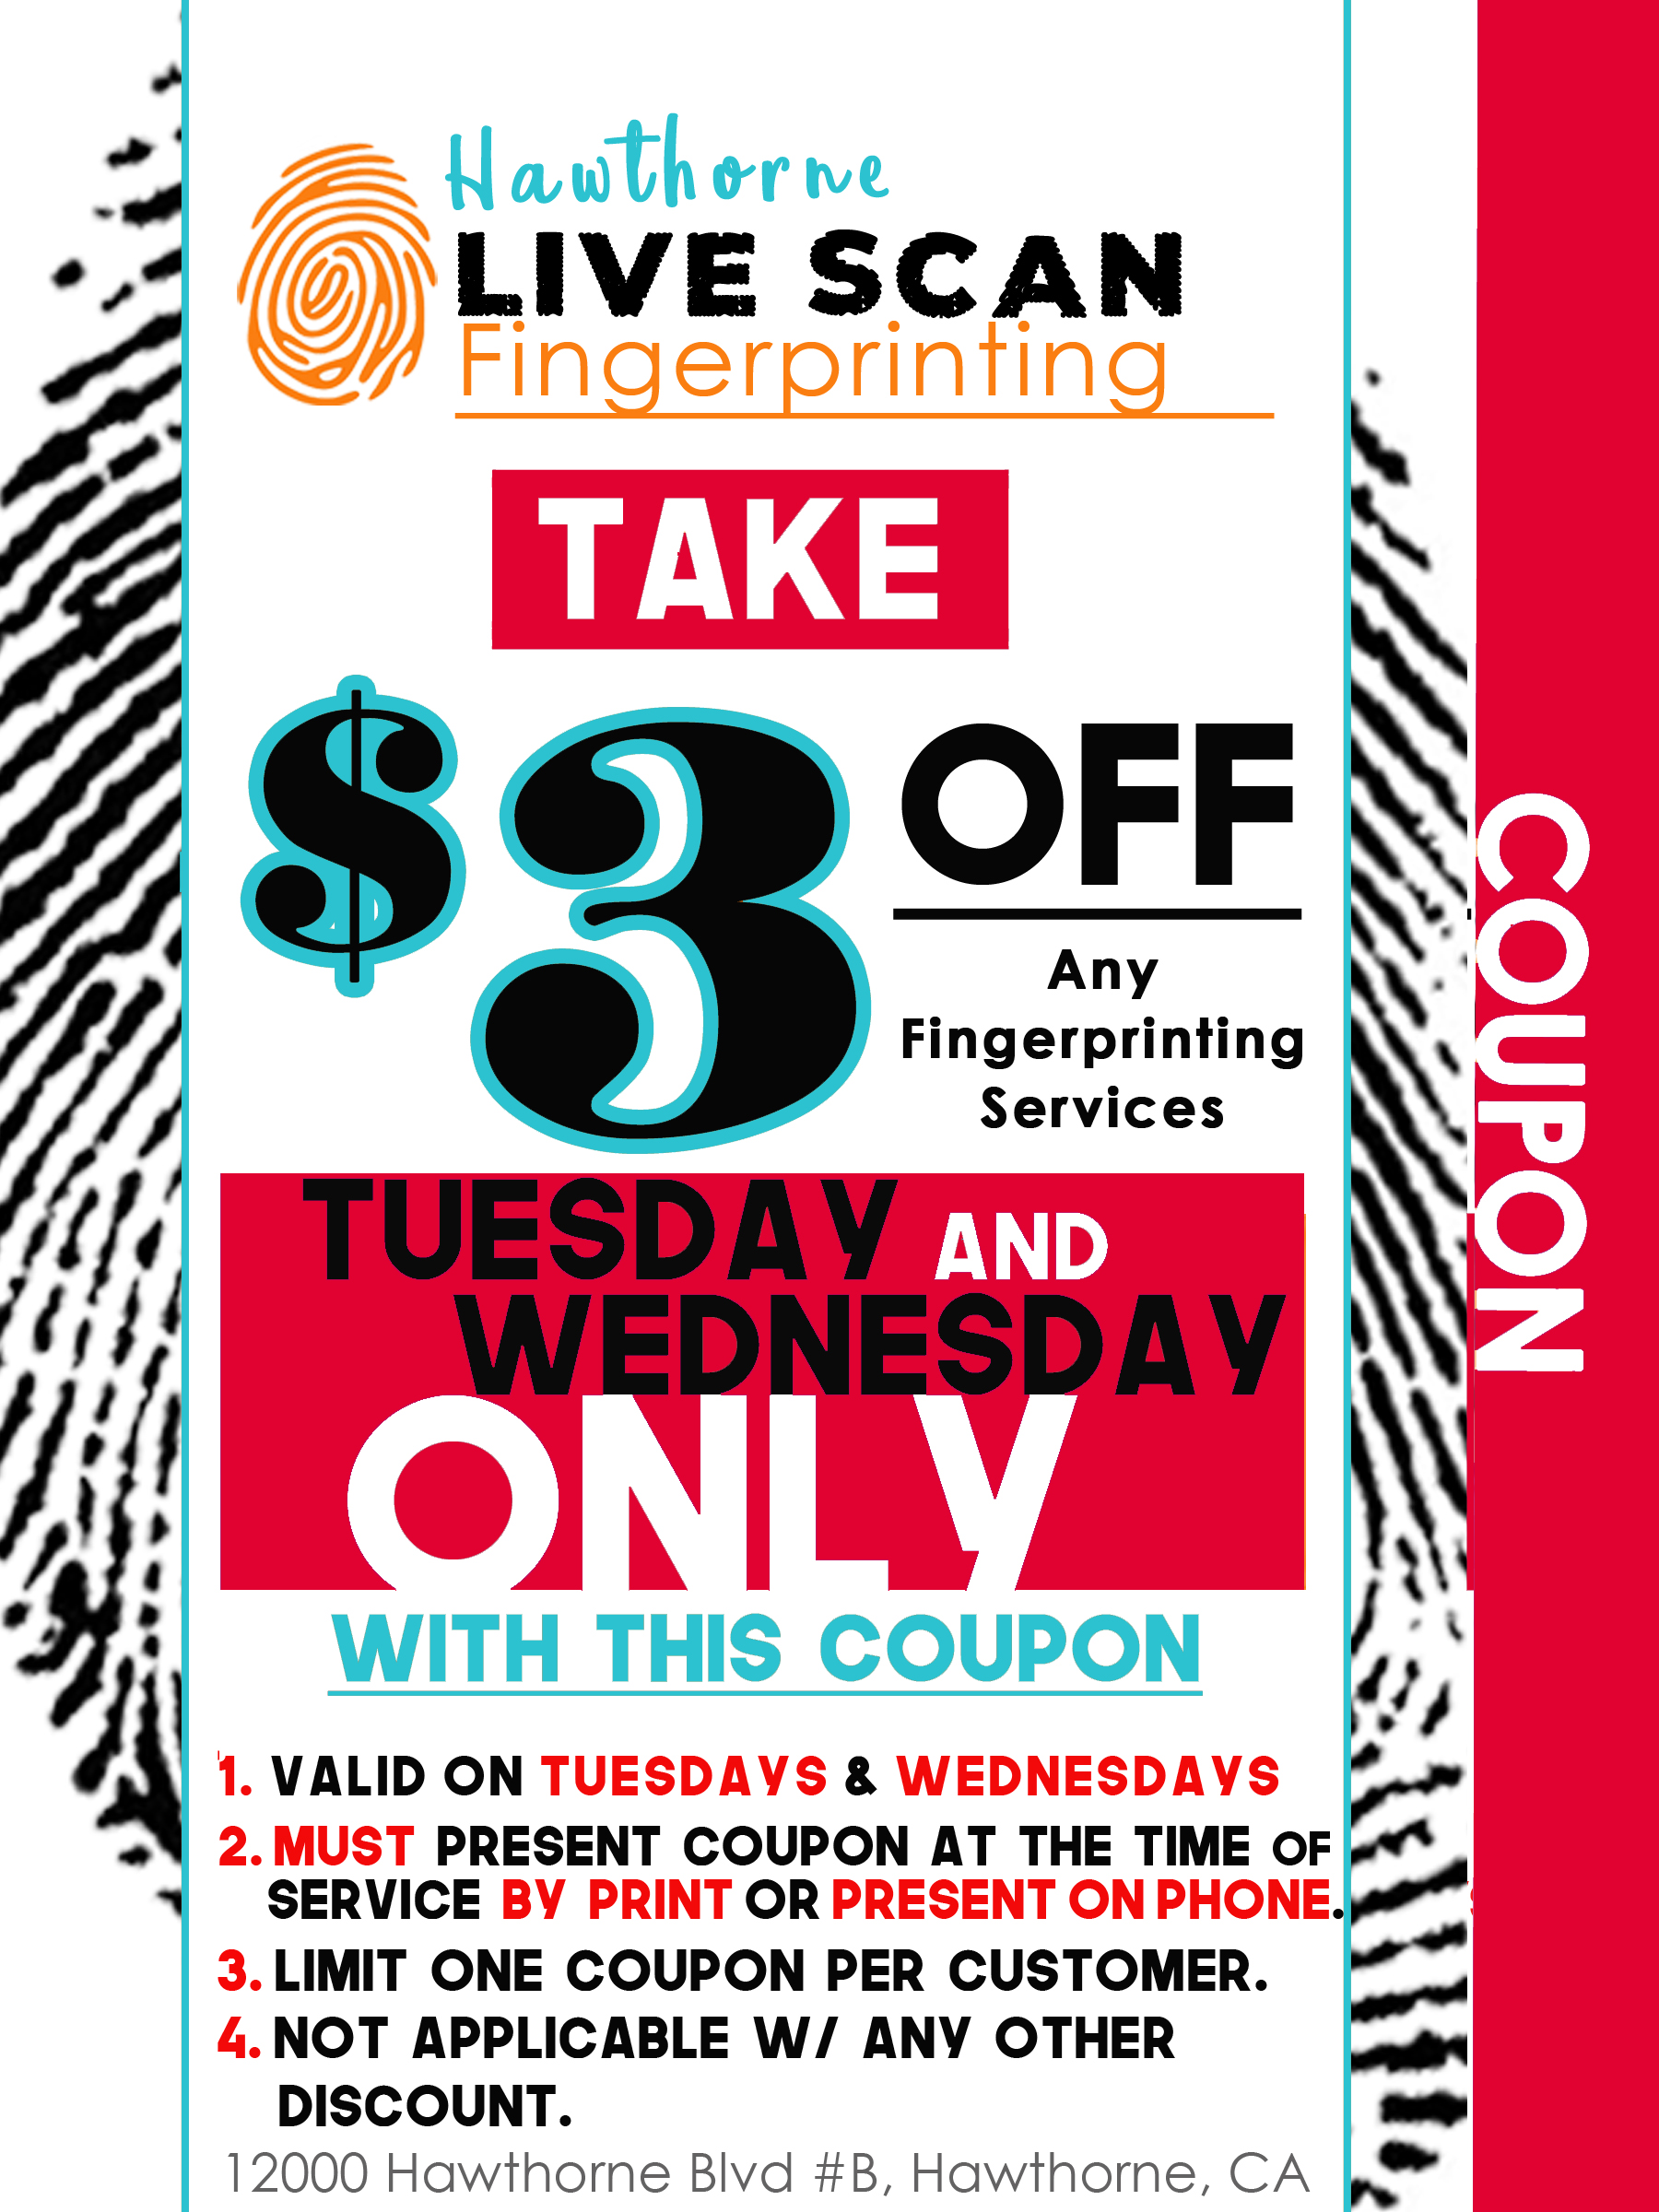 Coupons Hawthorne Live Scan